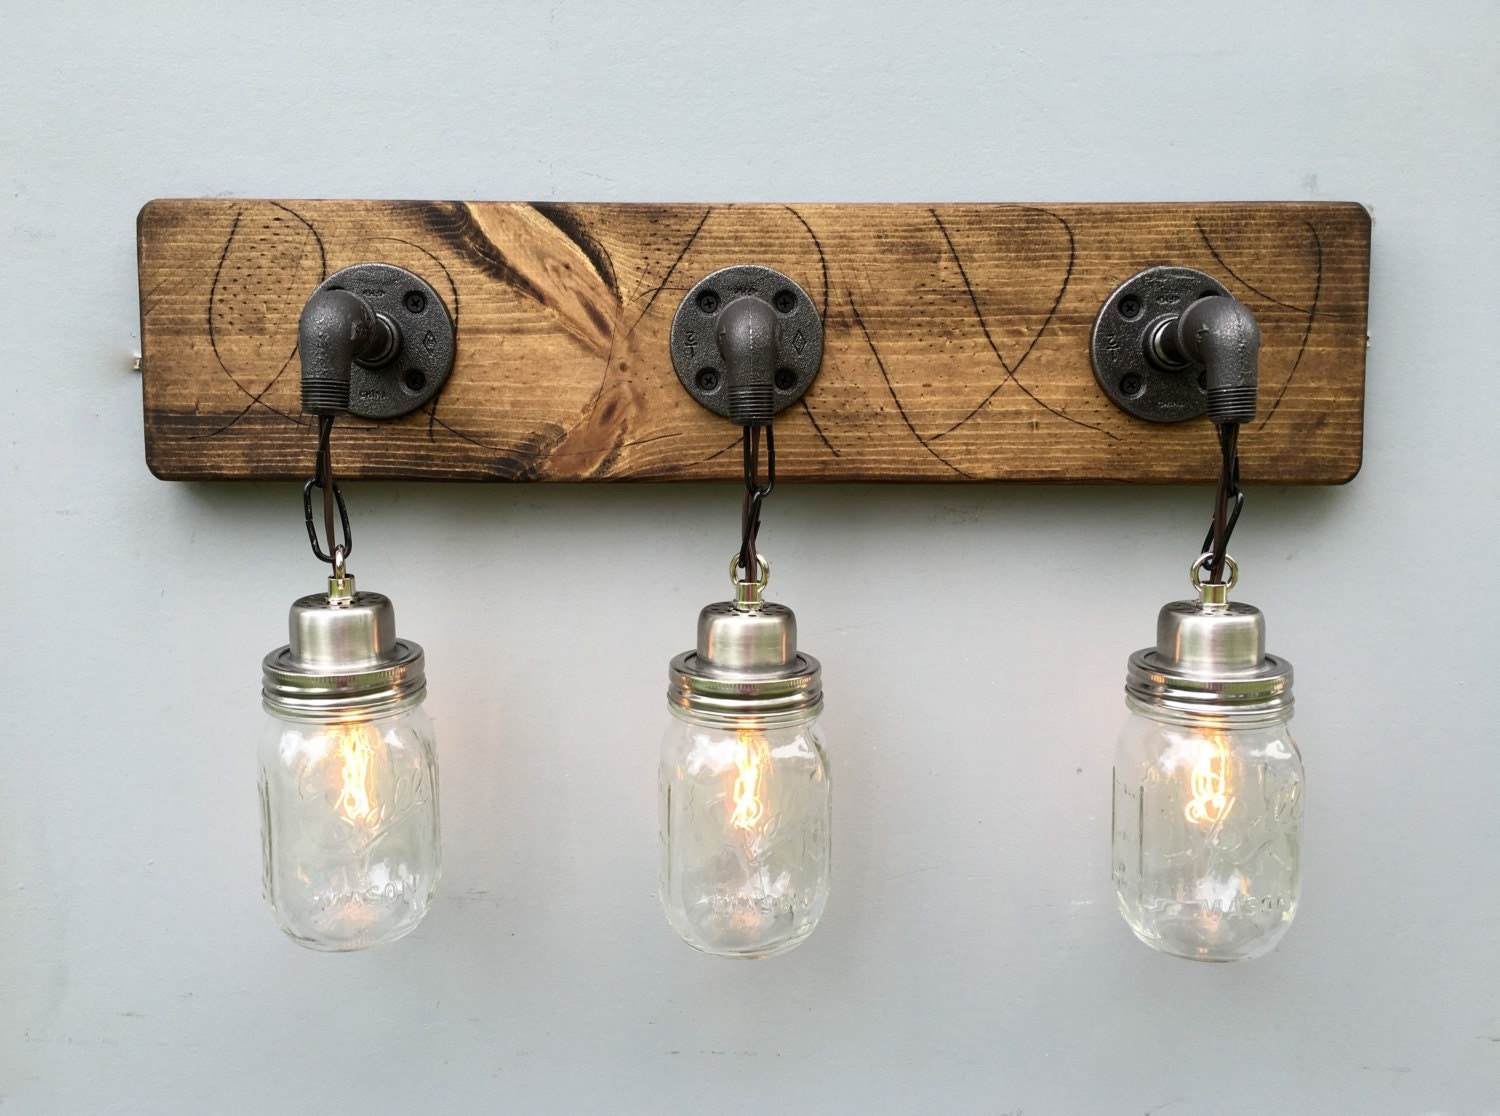 vanity light fixture 3 country style mason jar light by lightrooom. Black Bedroom Furniture Sets. Home Design Ideas